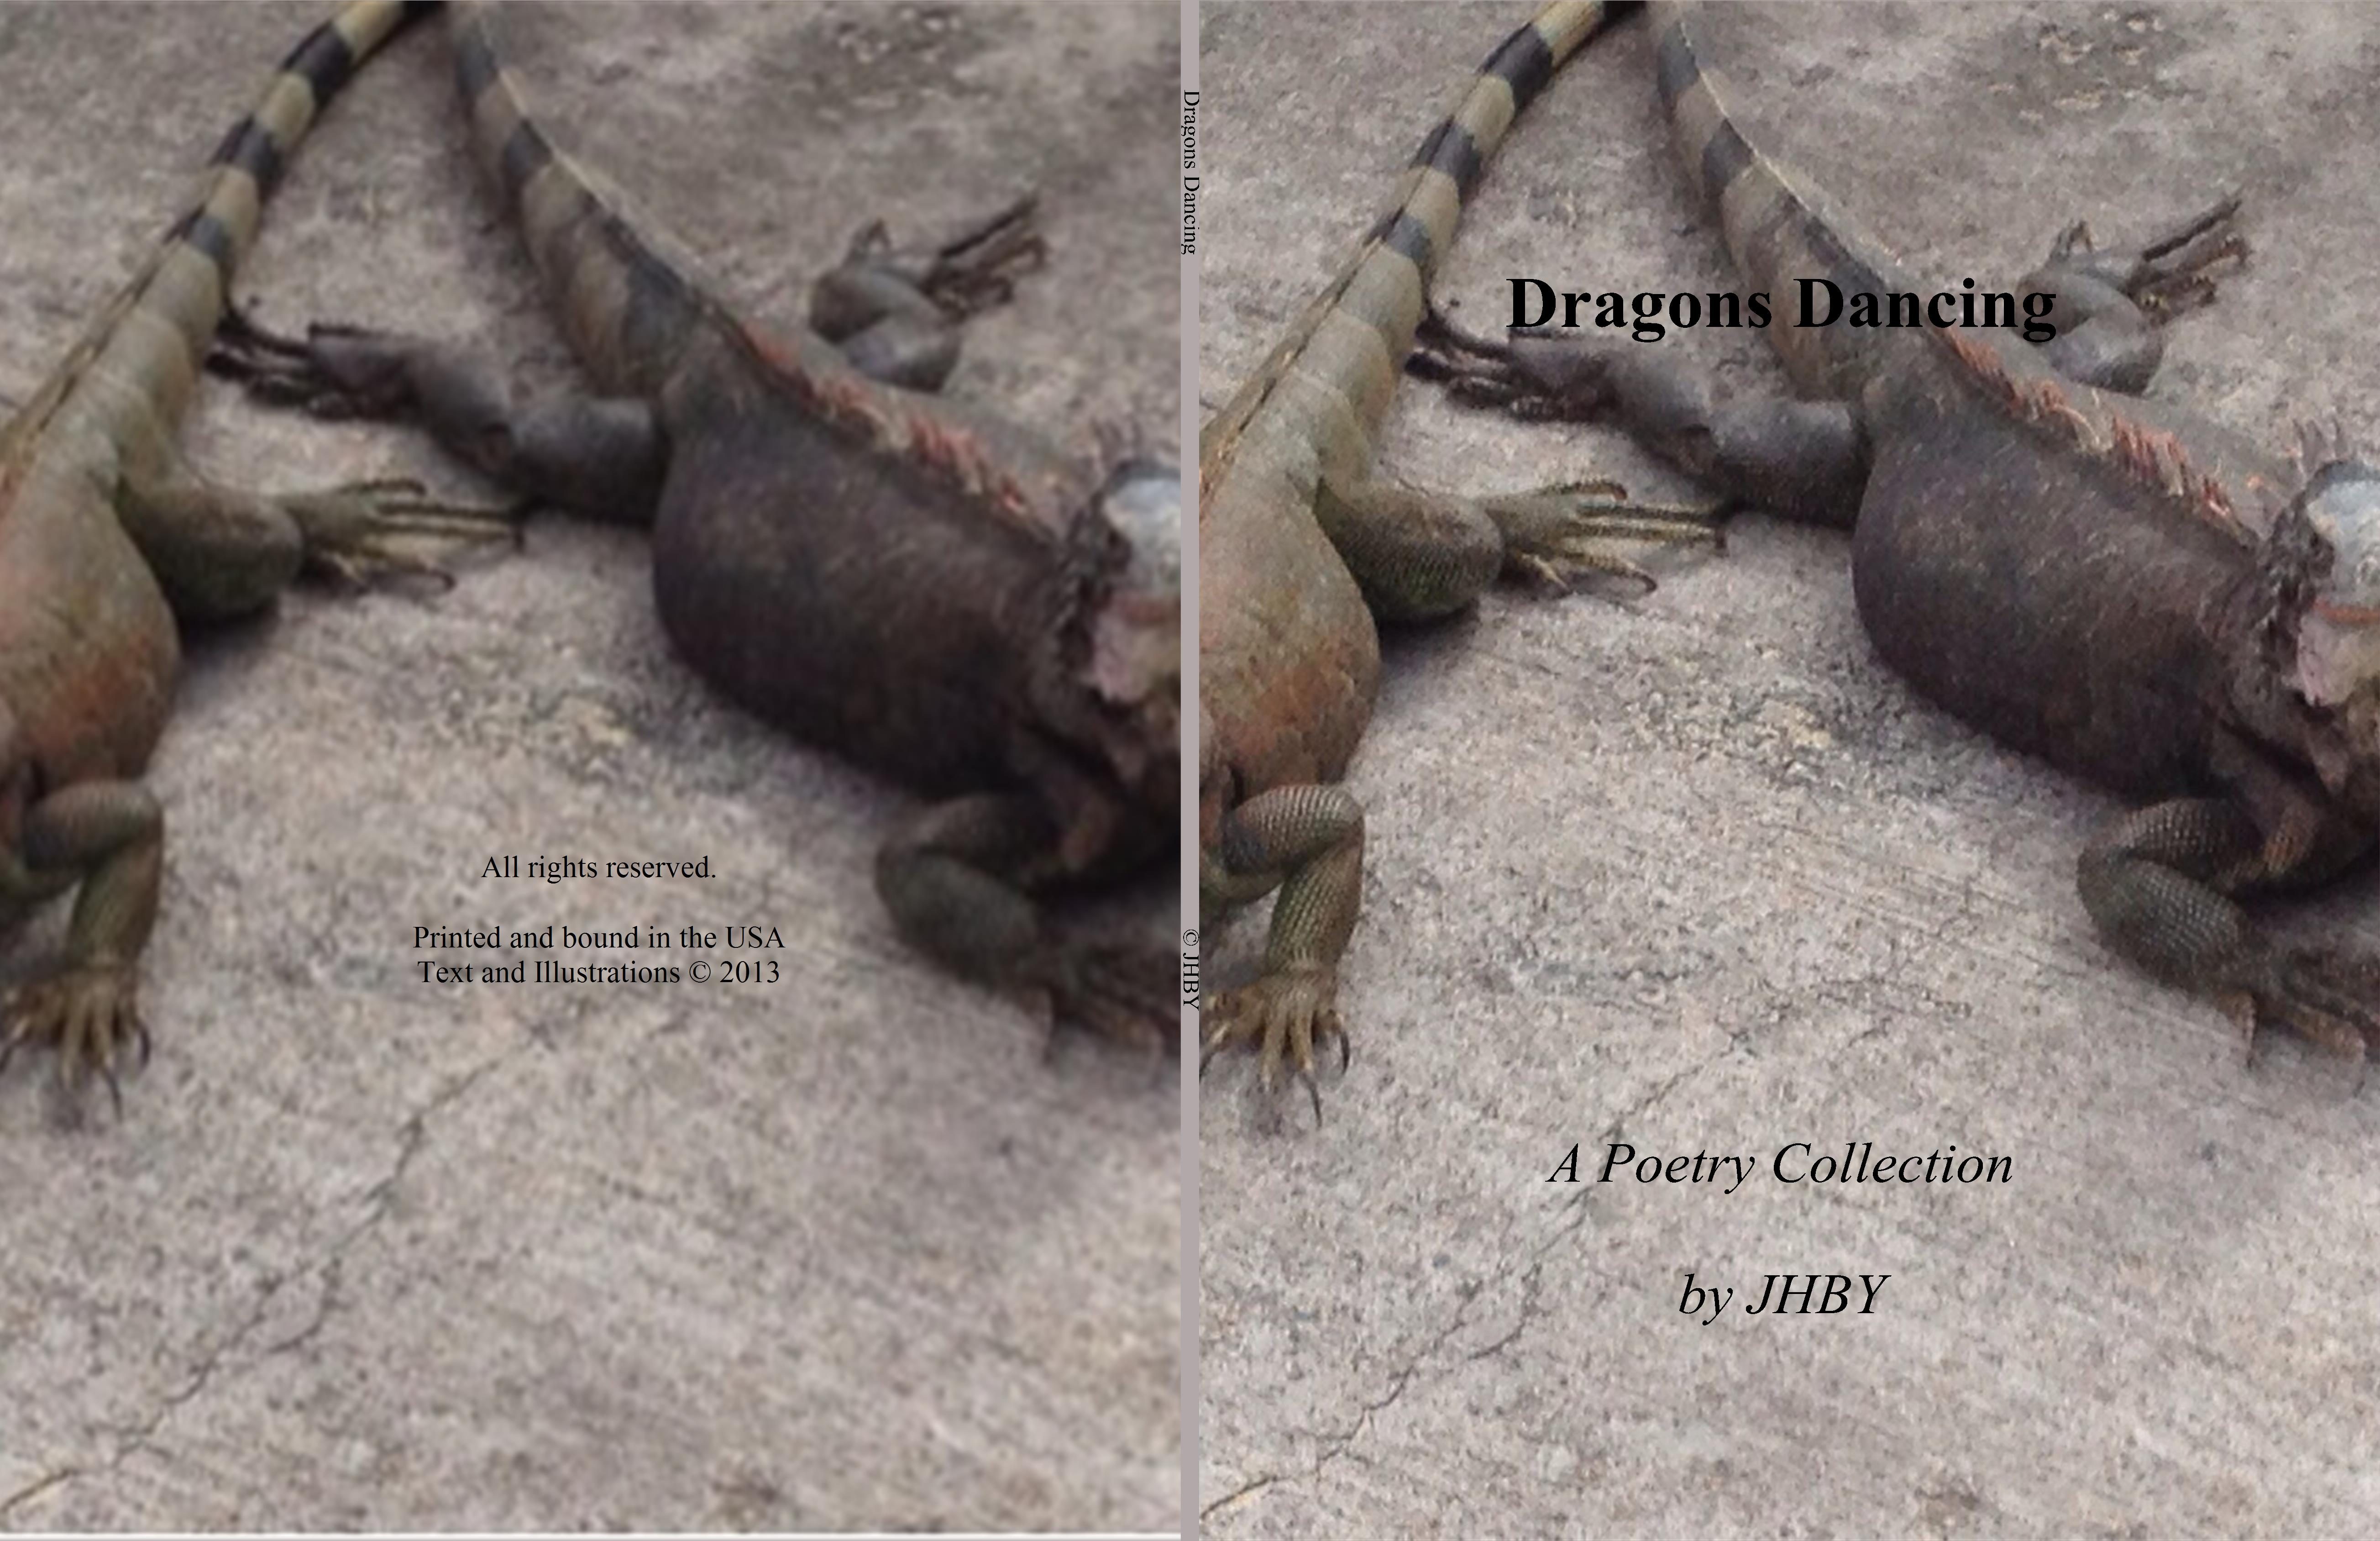 Dragons Dancing cover image